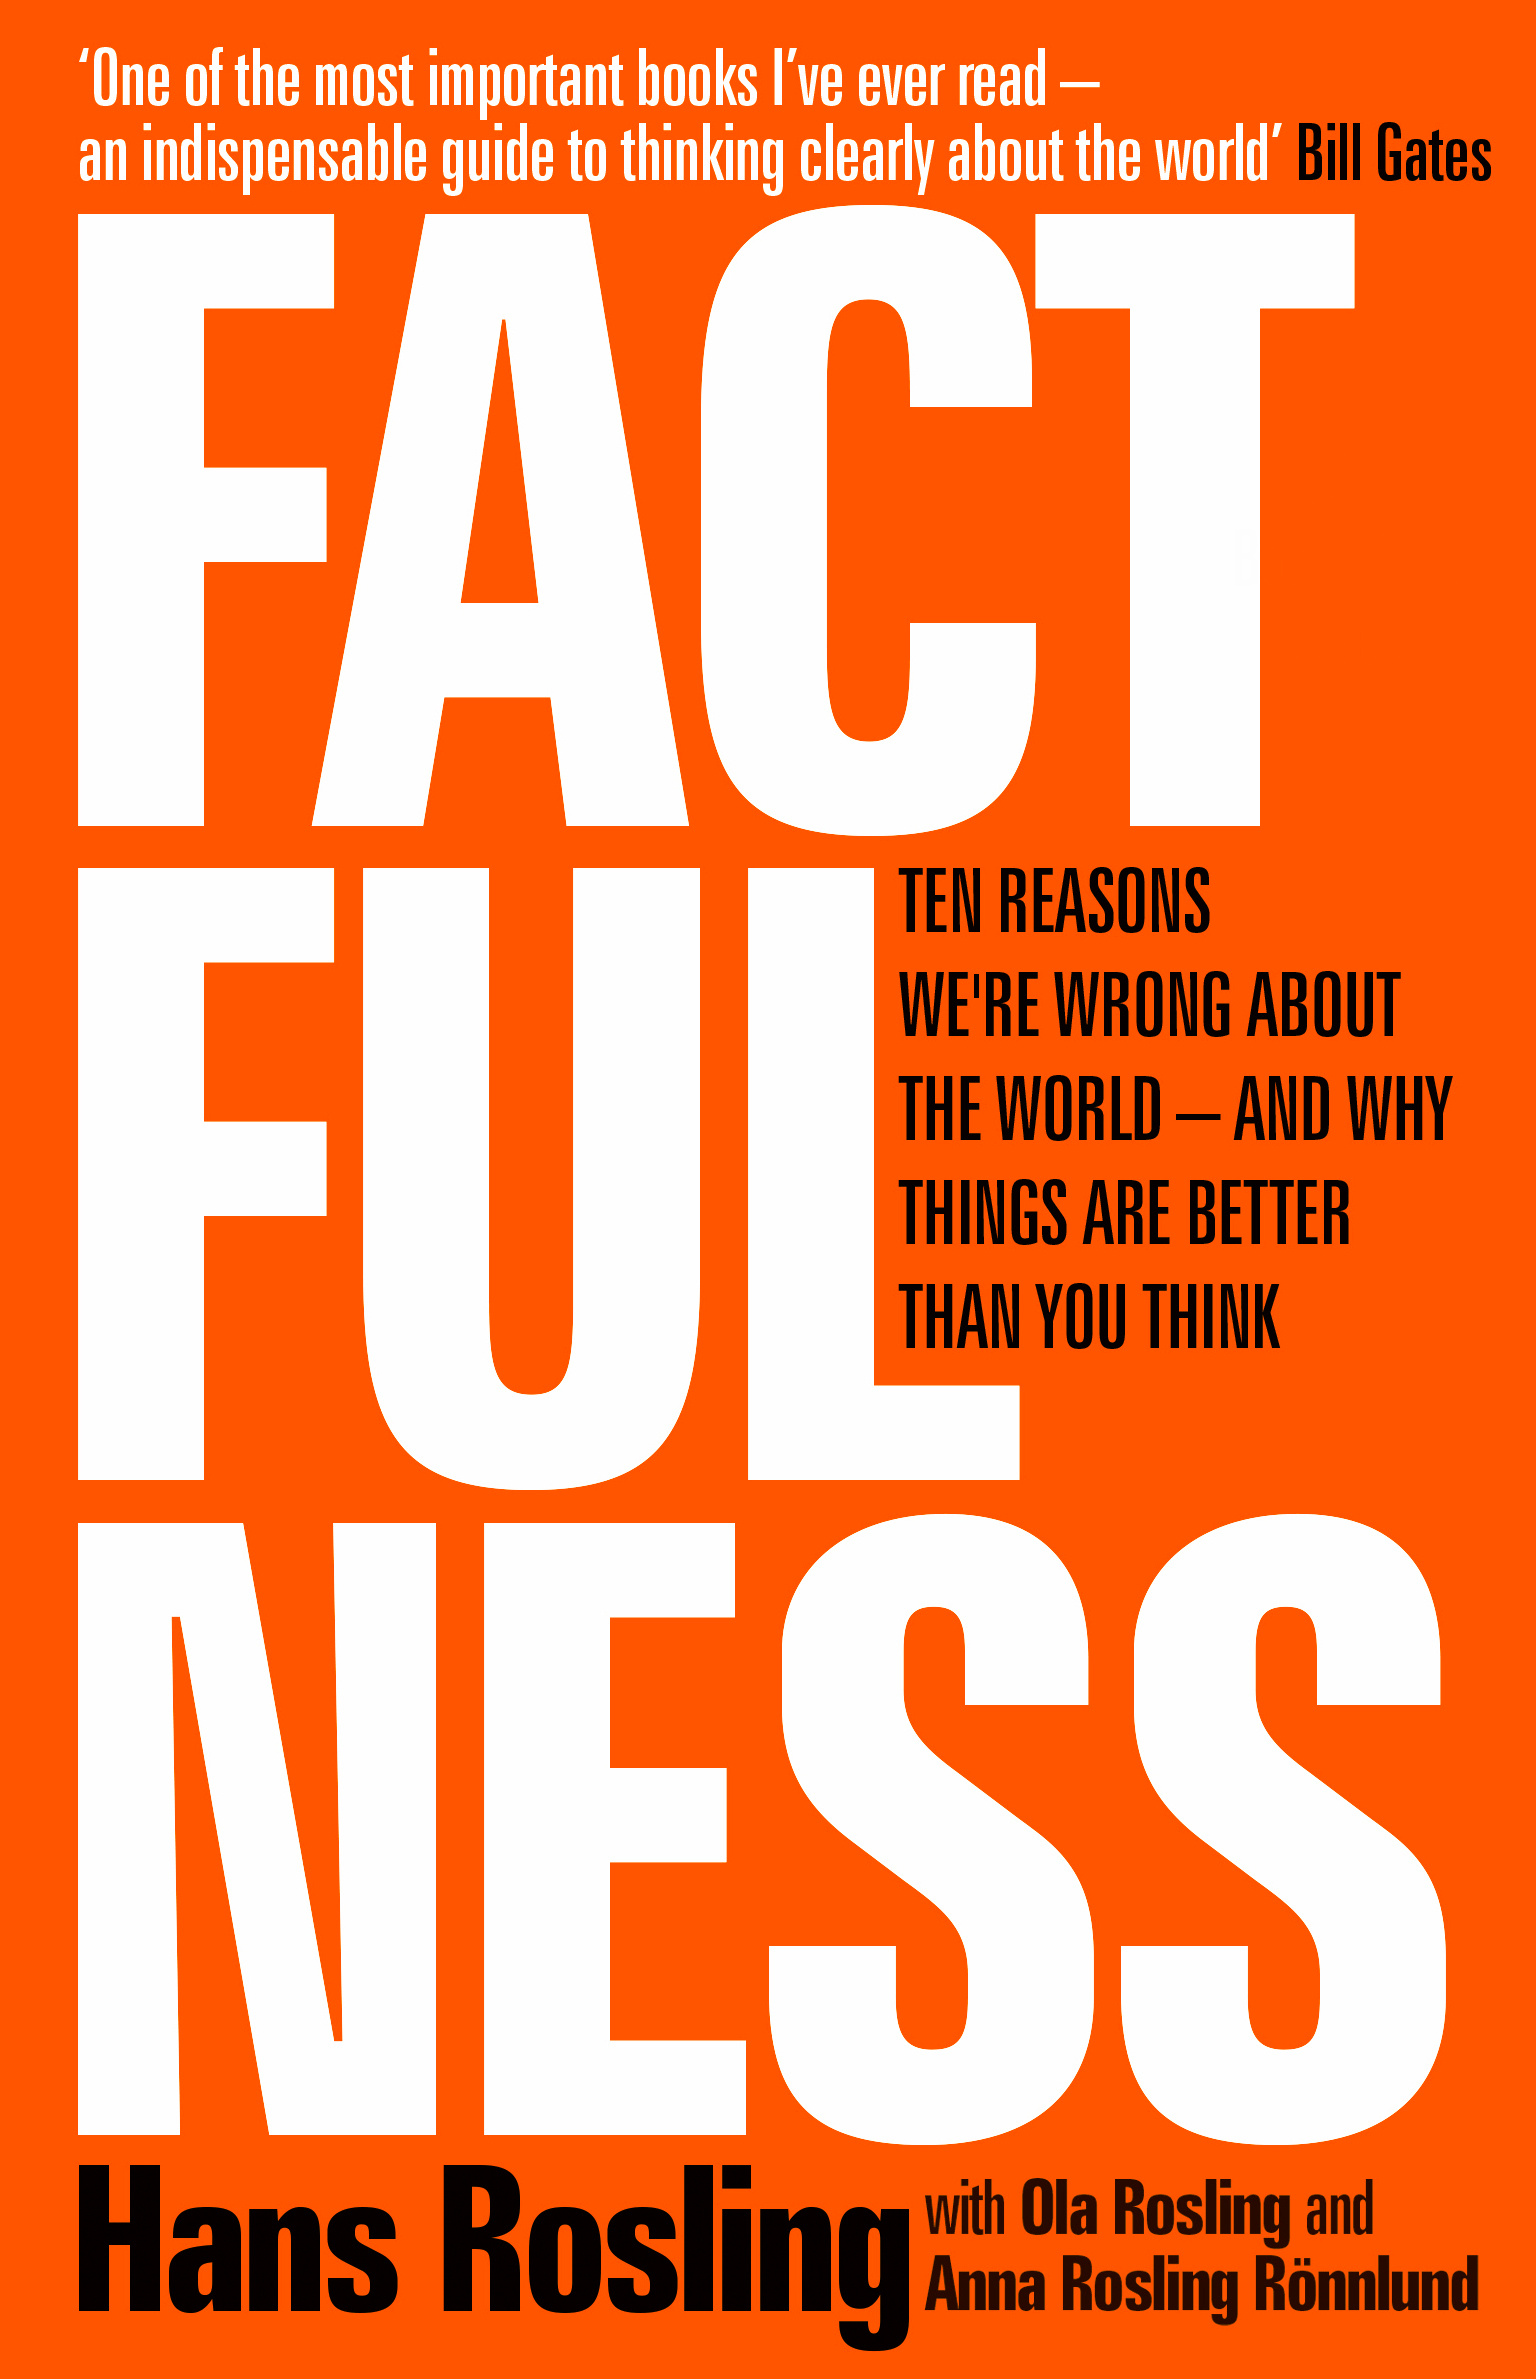 FactfulnessOla Rosling